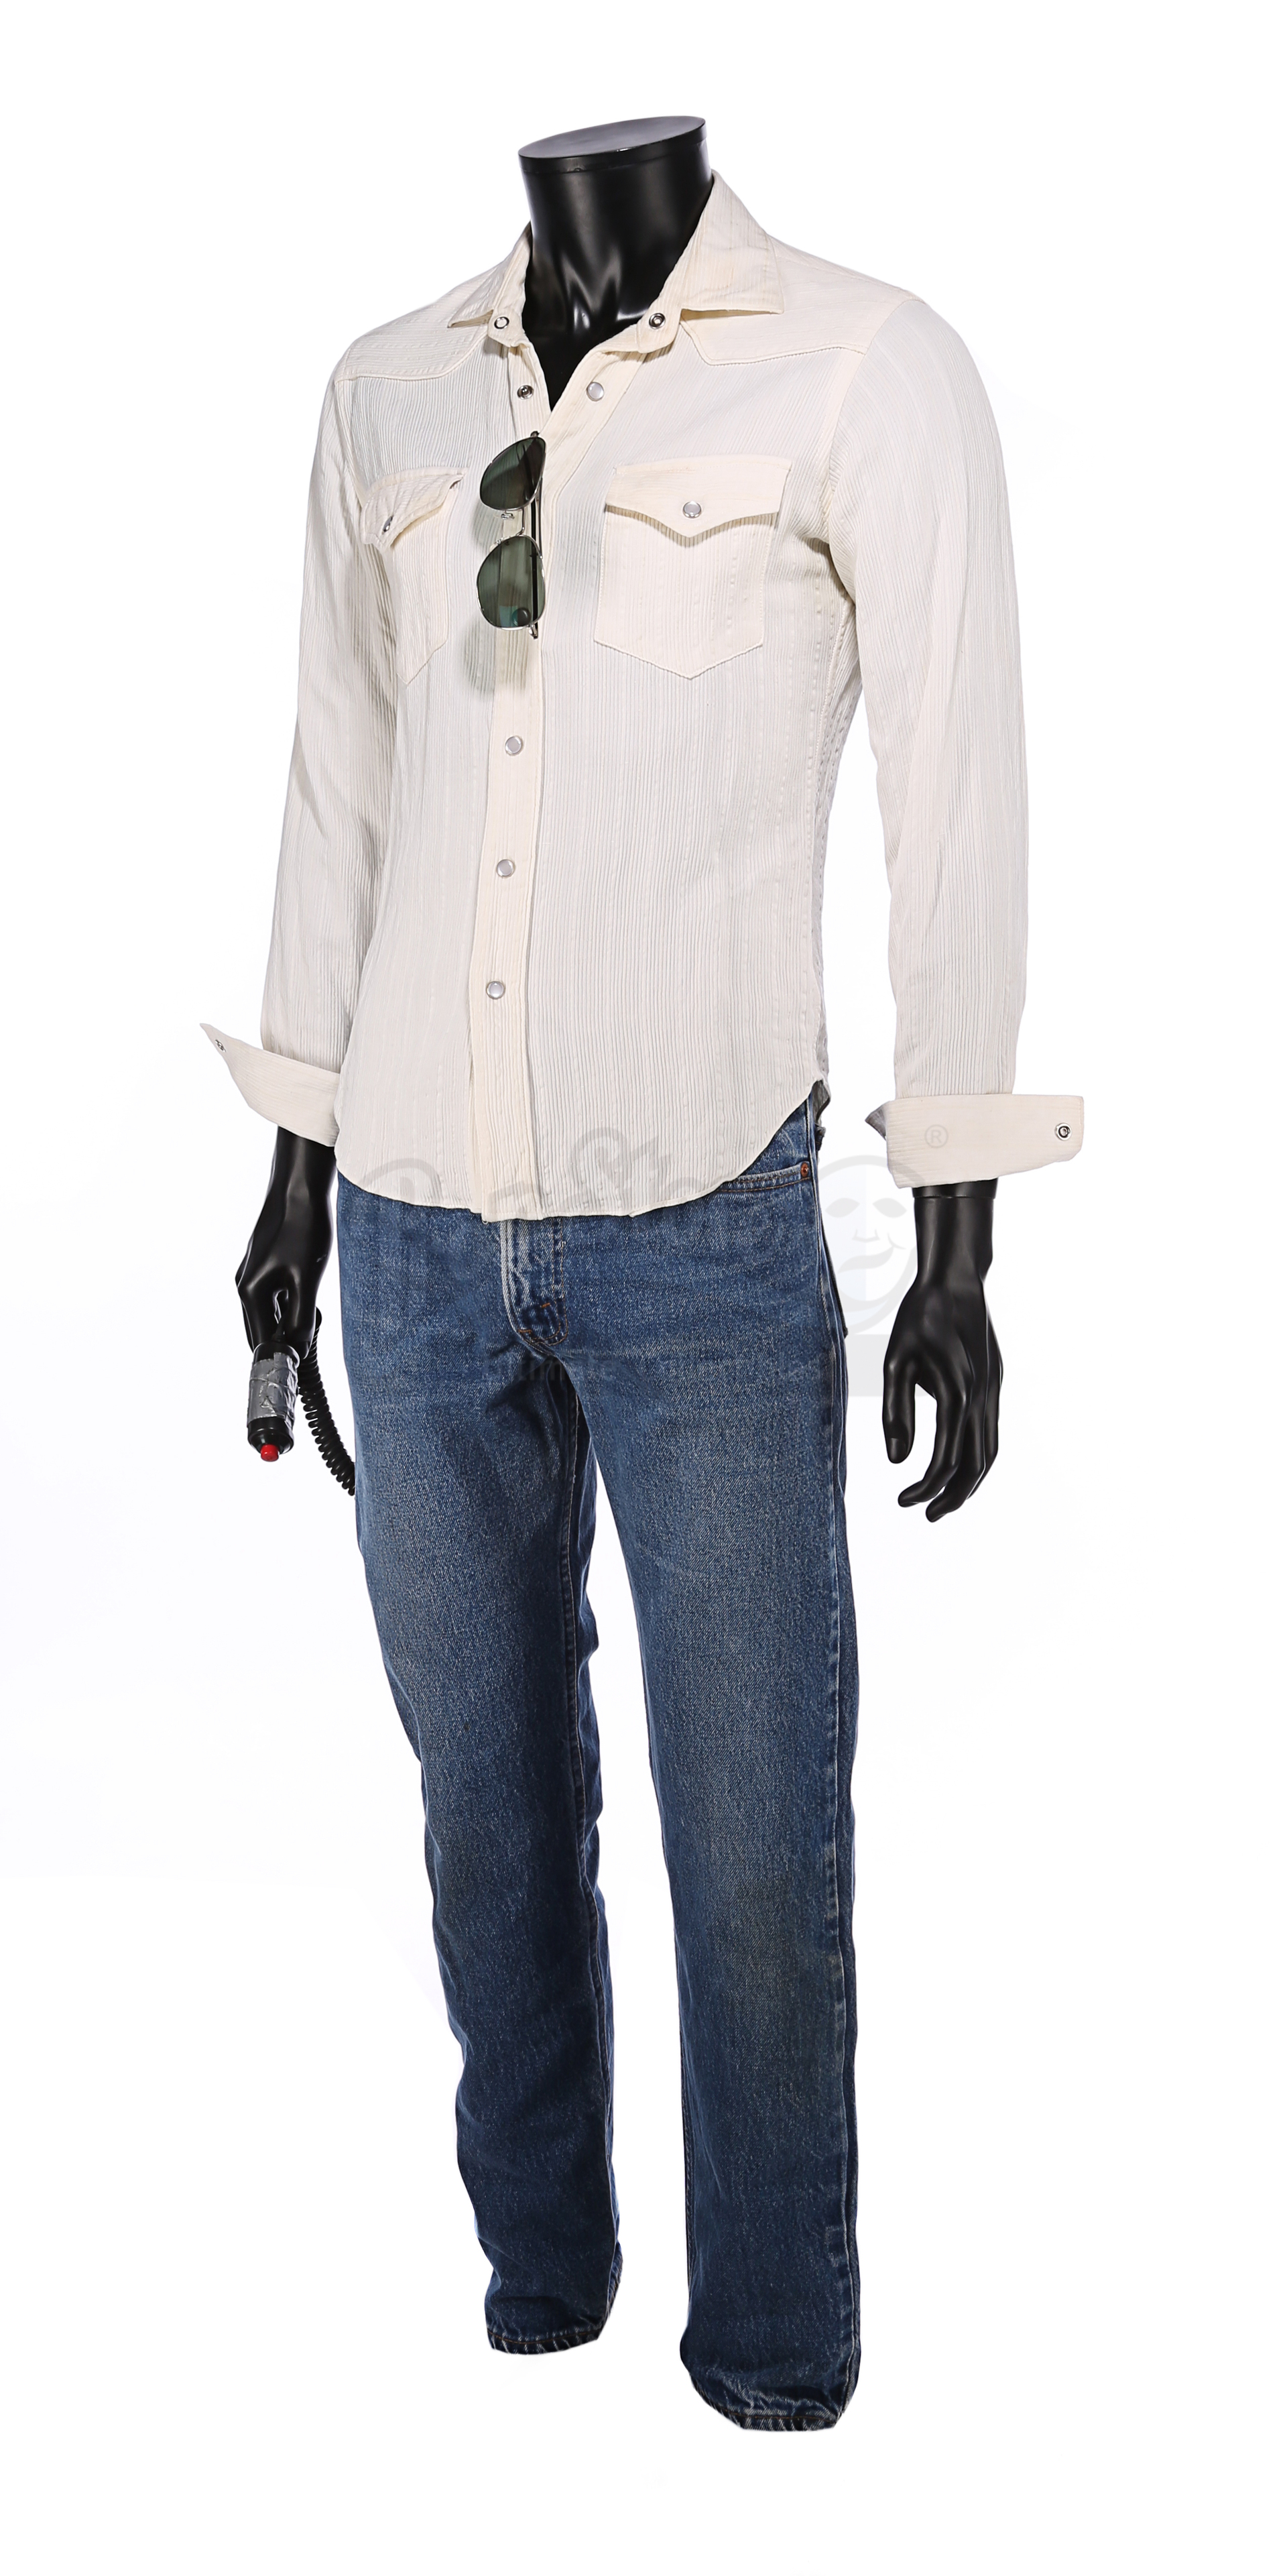 AMERICAN MADE (2017) - Barry Seal's (Tom Cruise) Costume - Image 5 of 23